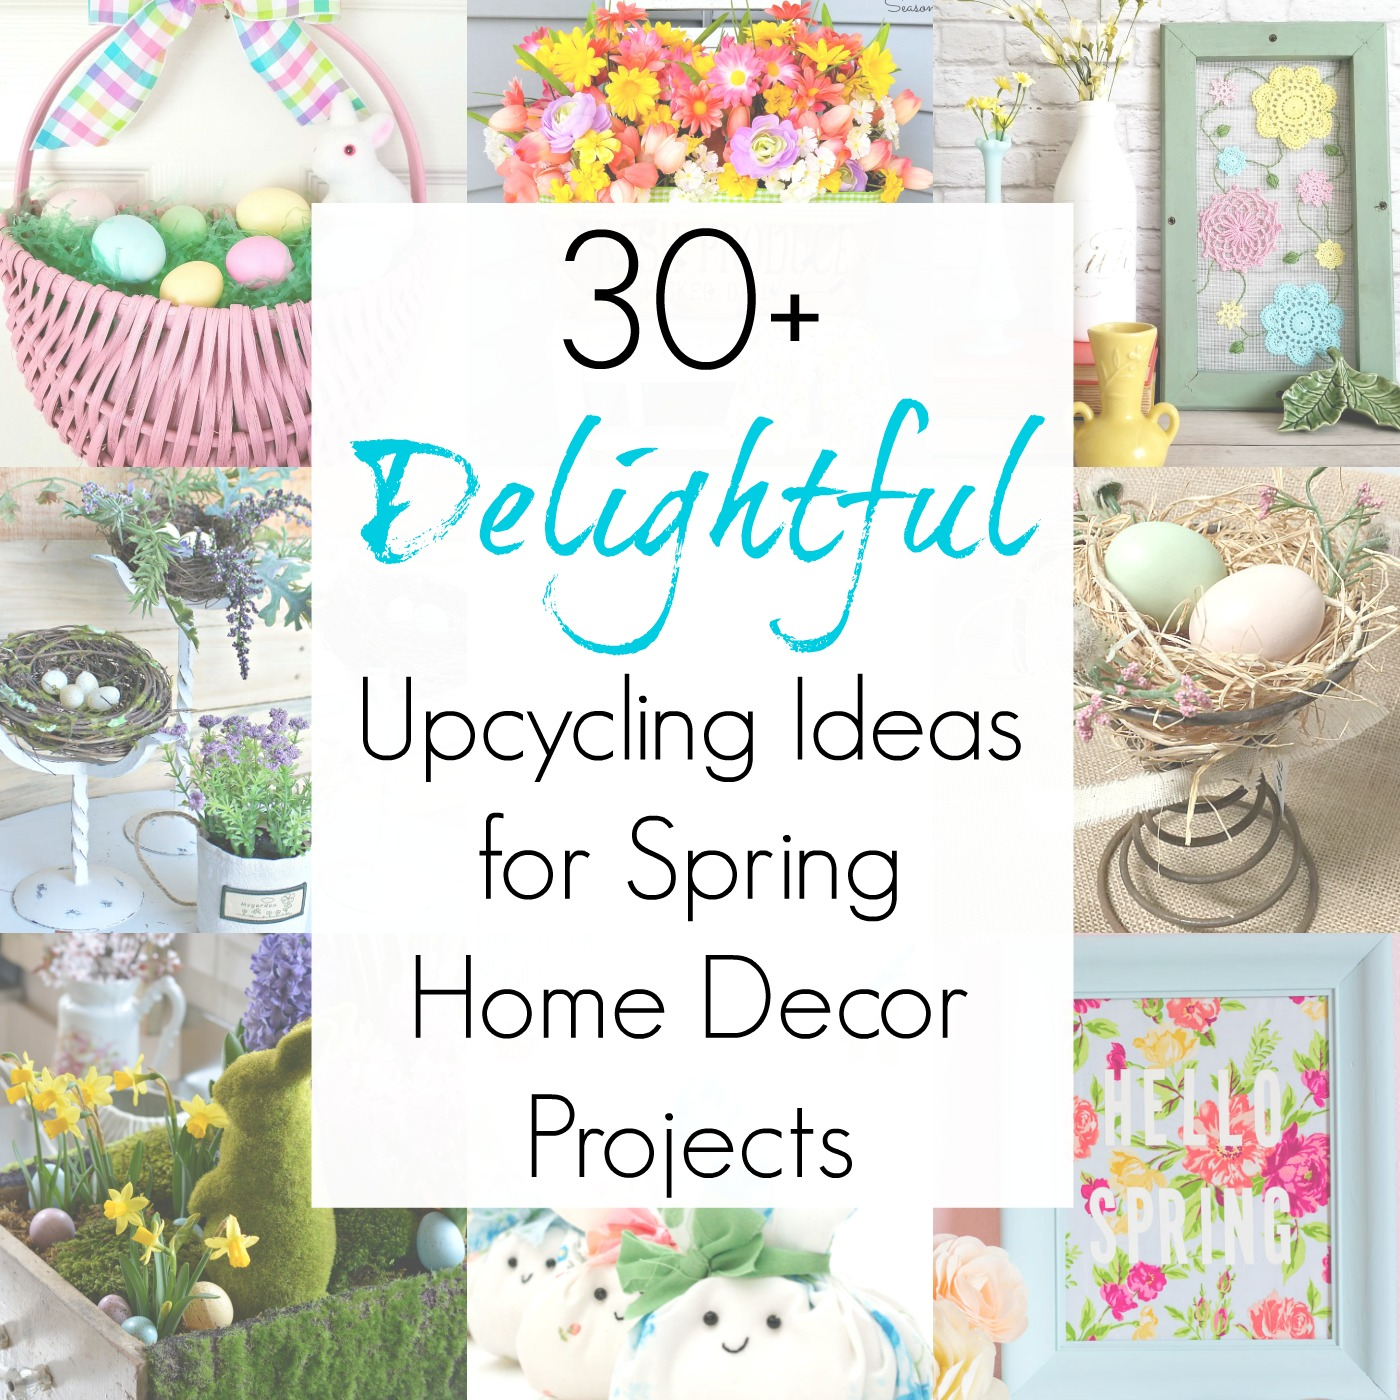 Spring decor ideas and decorating for Spring with these upcycling projects